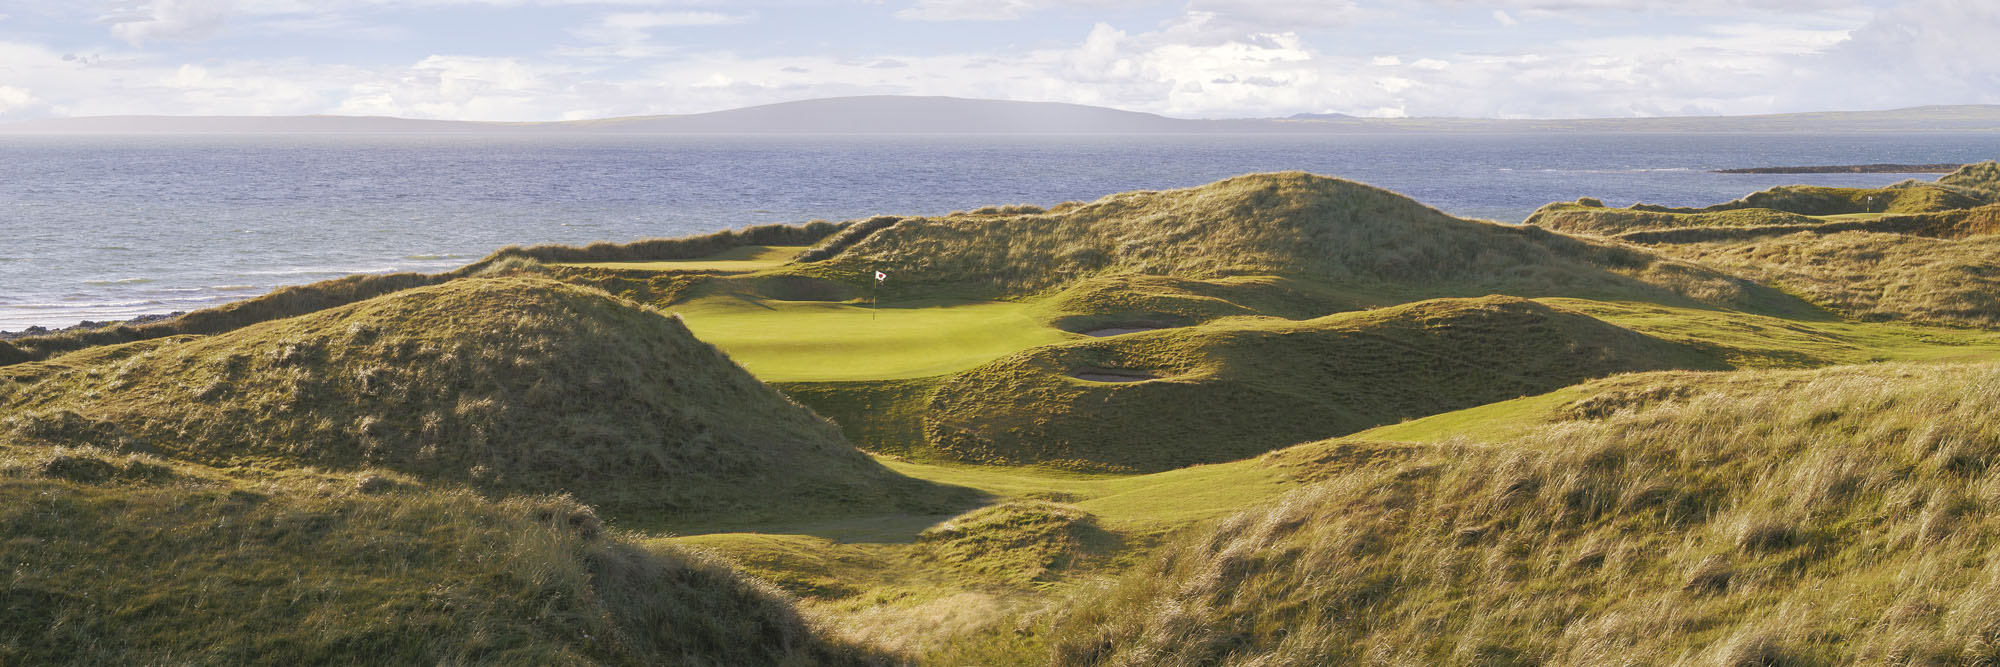 Golf Course Image - Ballybunion No. 15